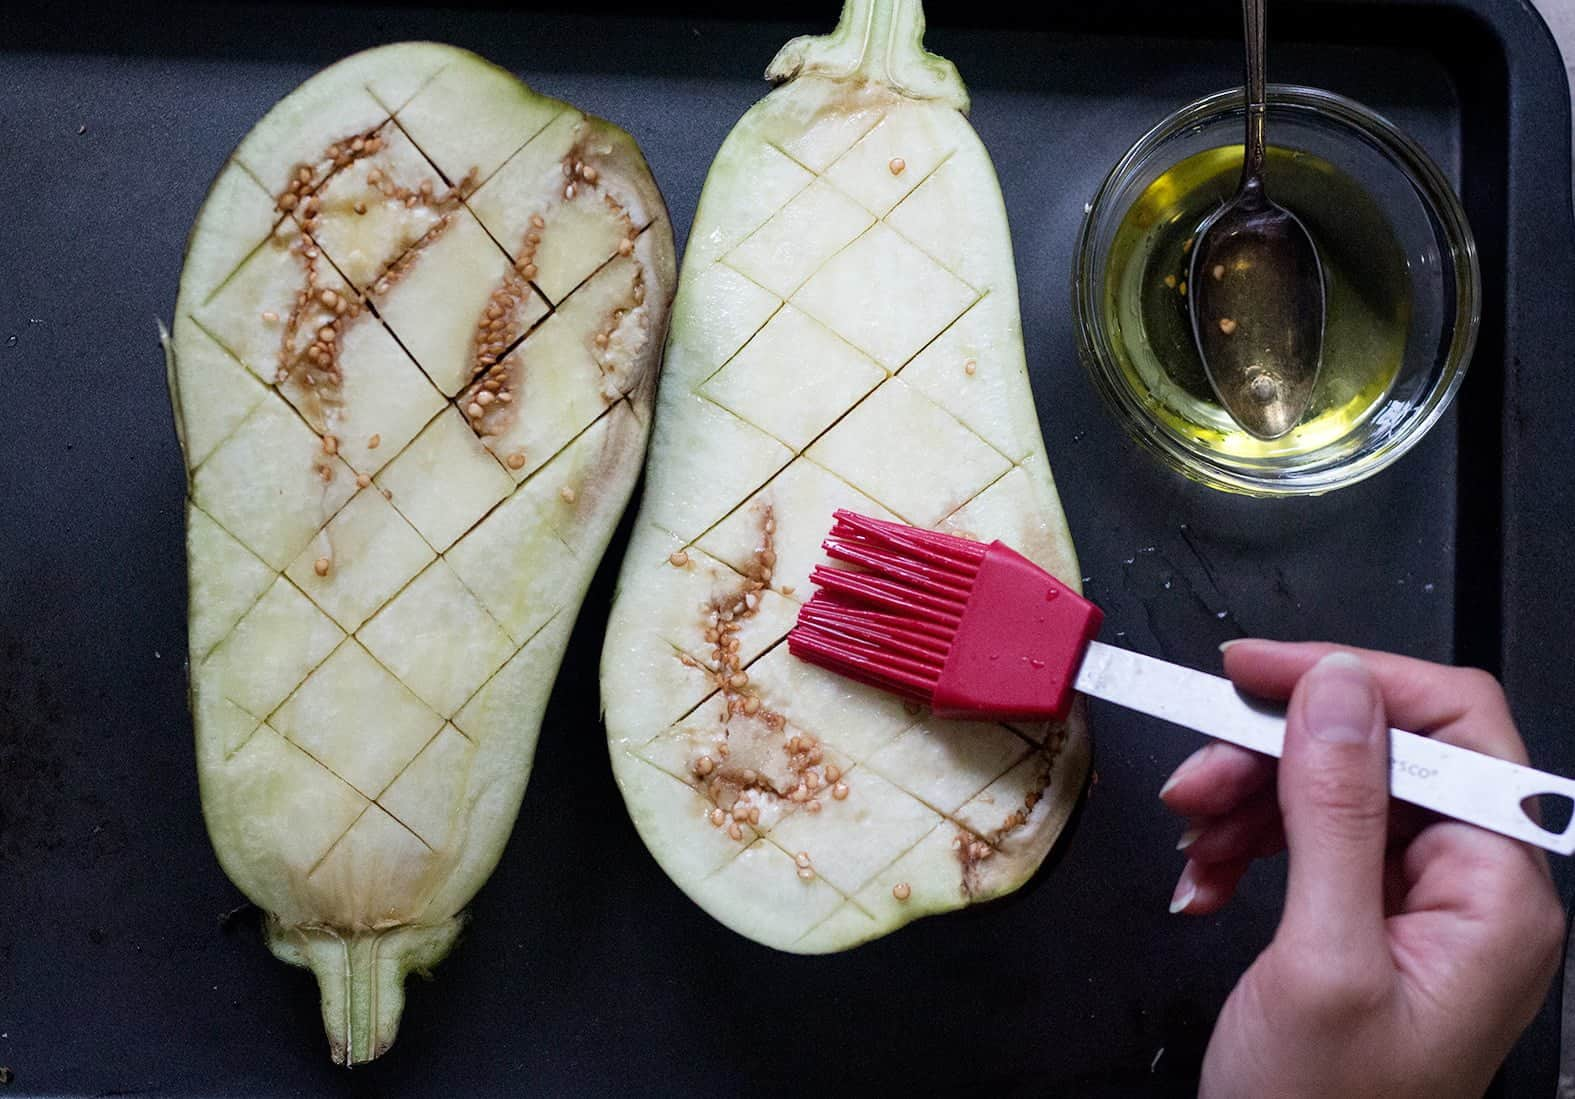 To make roasted eggplant in the oven cut diamonds in the eggplant without cutting the skin. Brush with extra virgin olive oil.